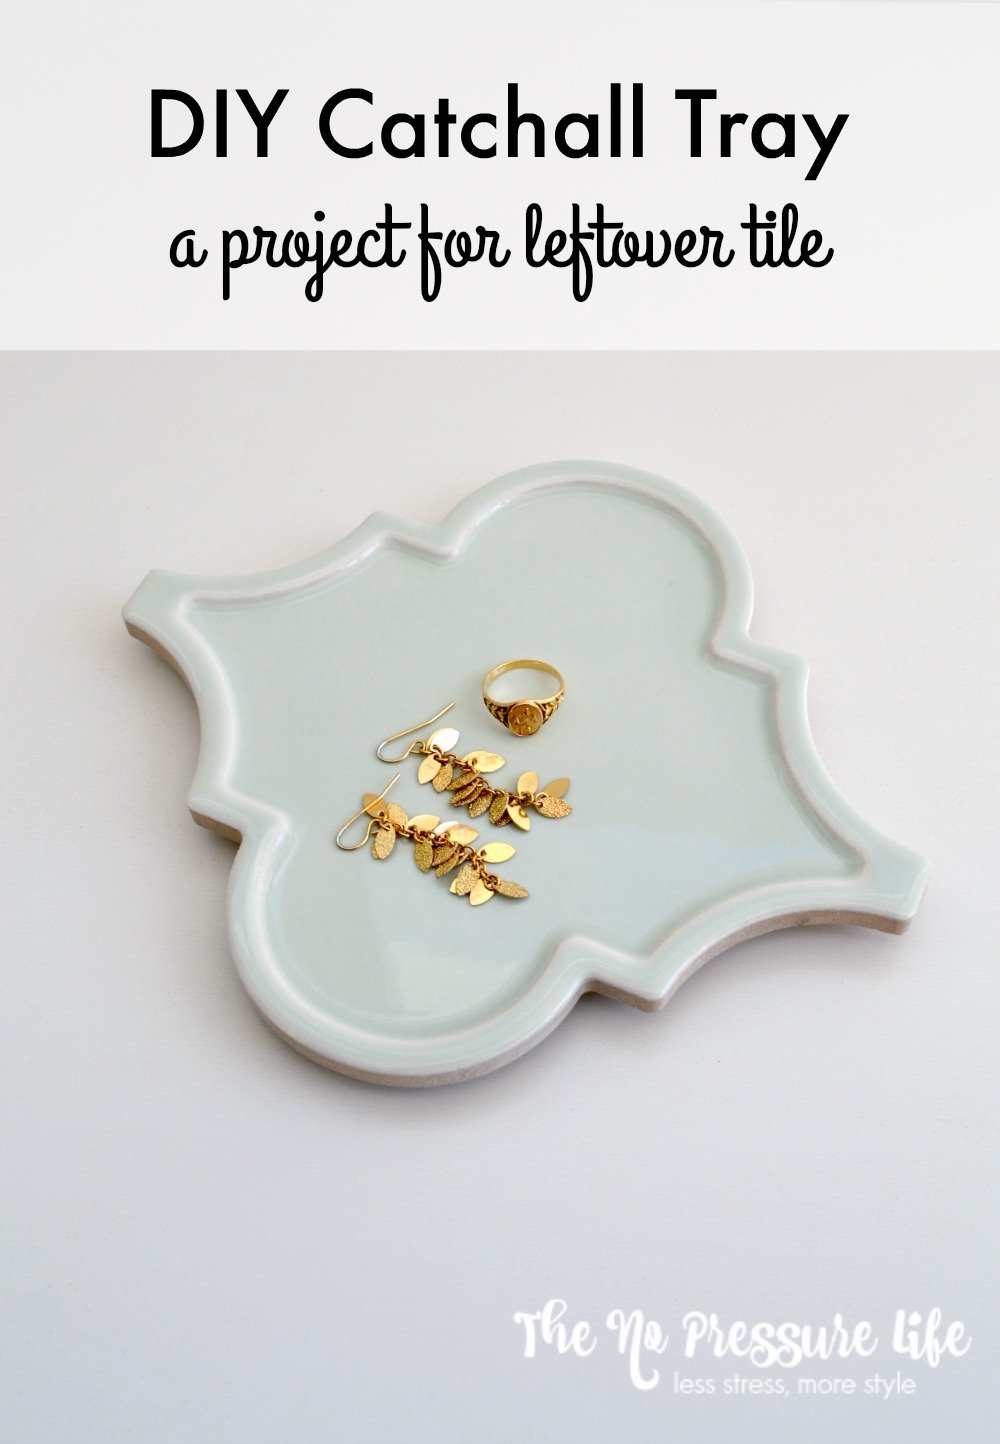 This DIY catchall tray is an easy way to use leftover tile. Create a catchall tray for jewelry, a coaster, or even a trivet. Read how at www.thenopressurelife.com.